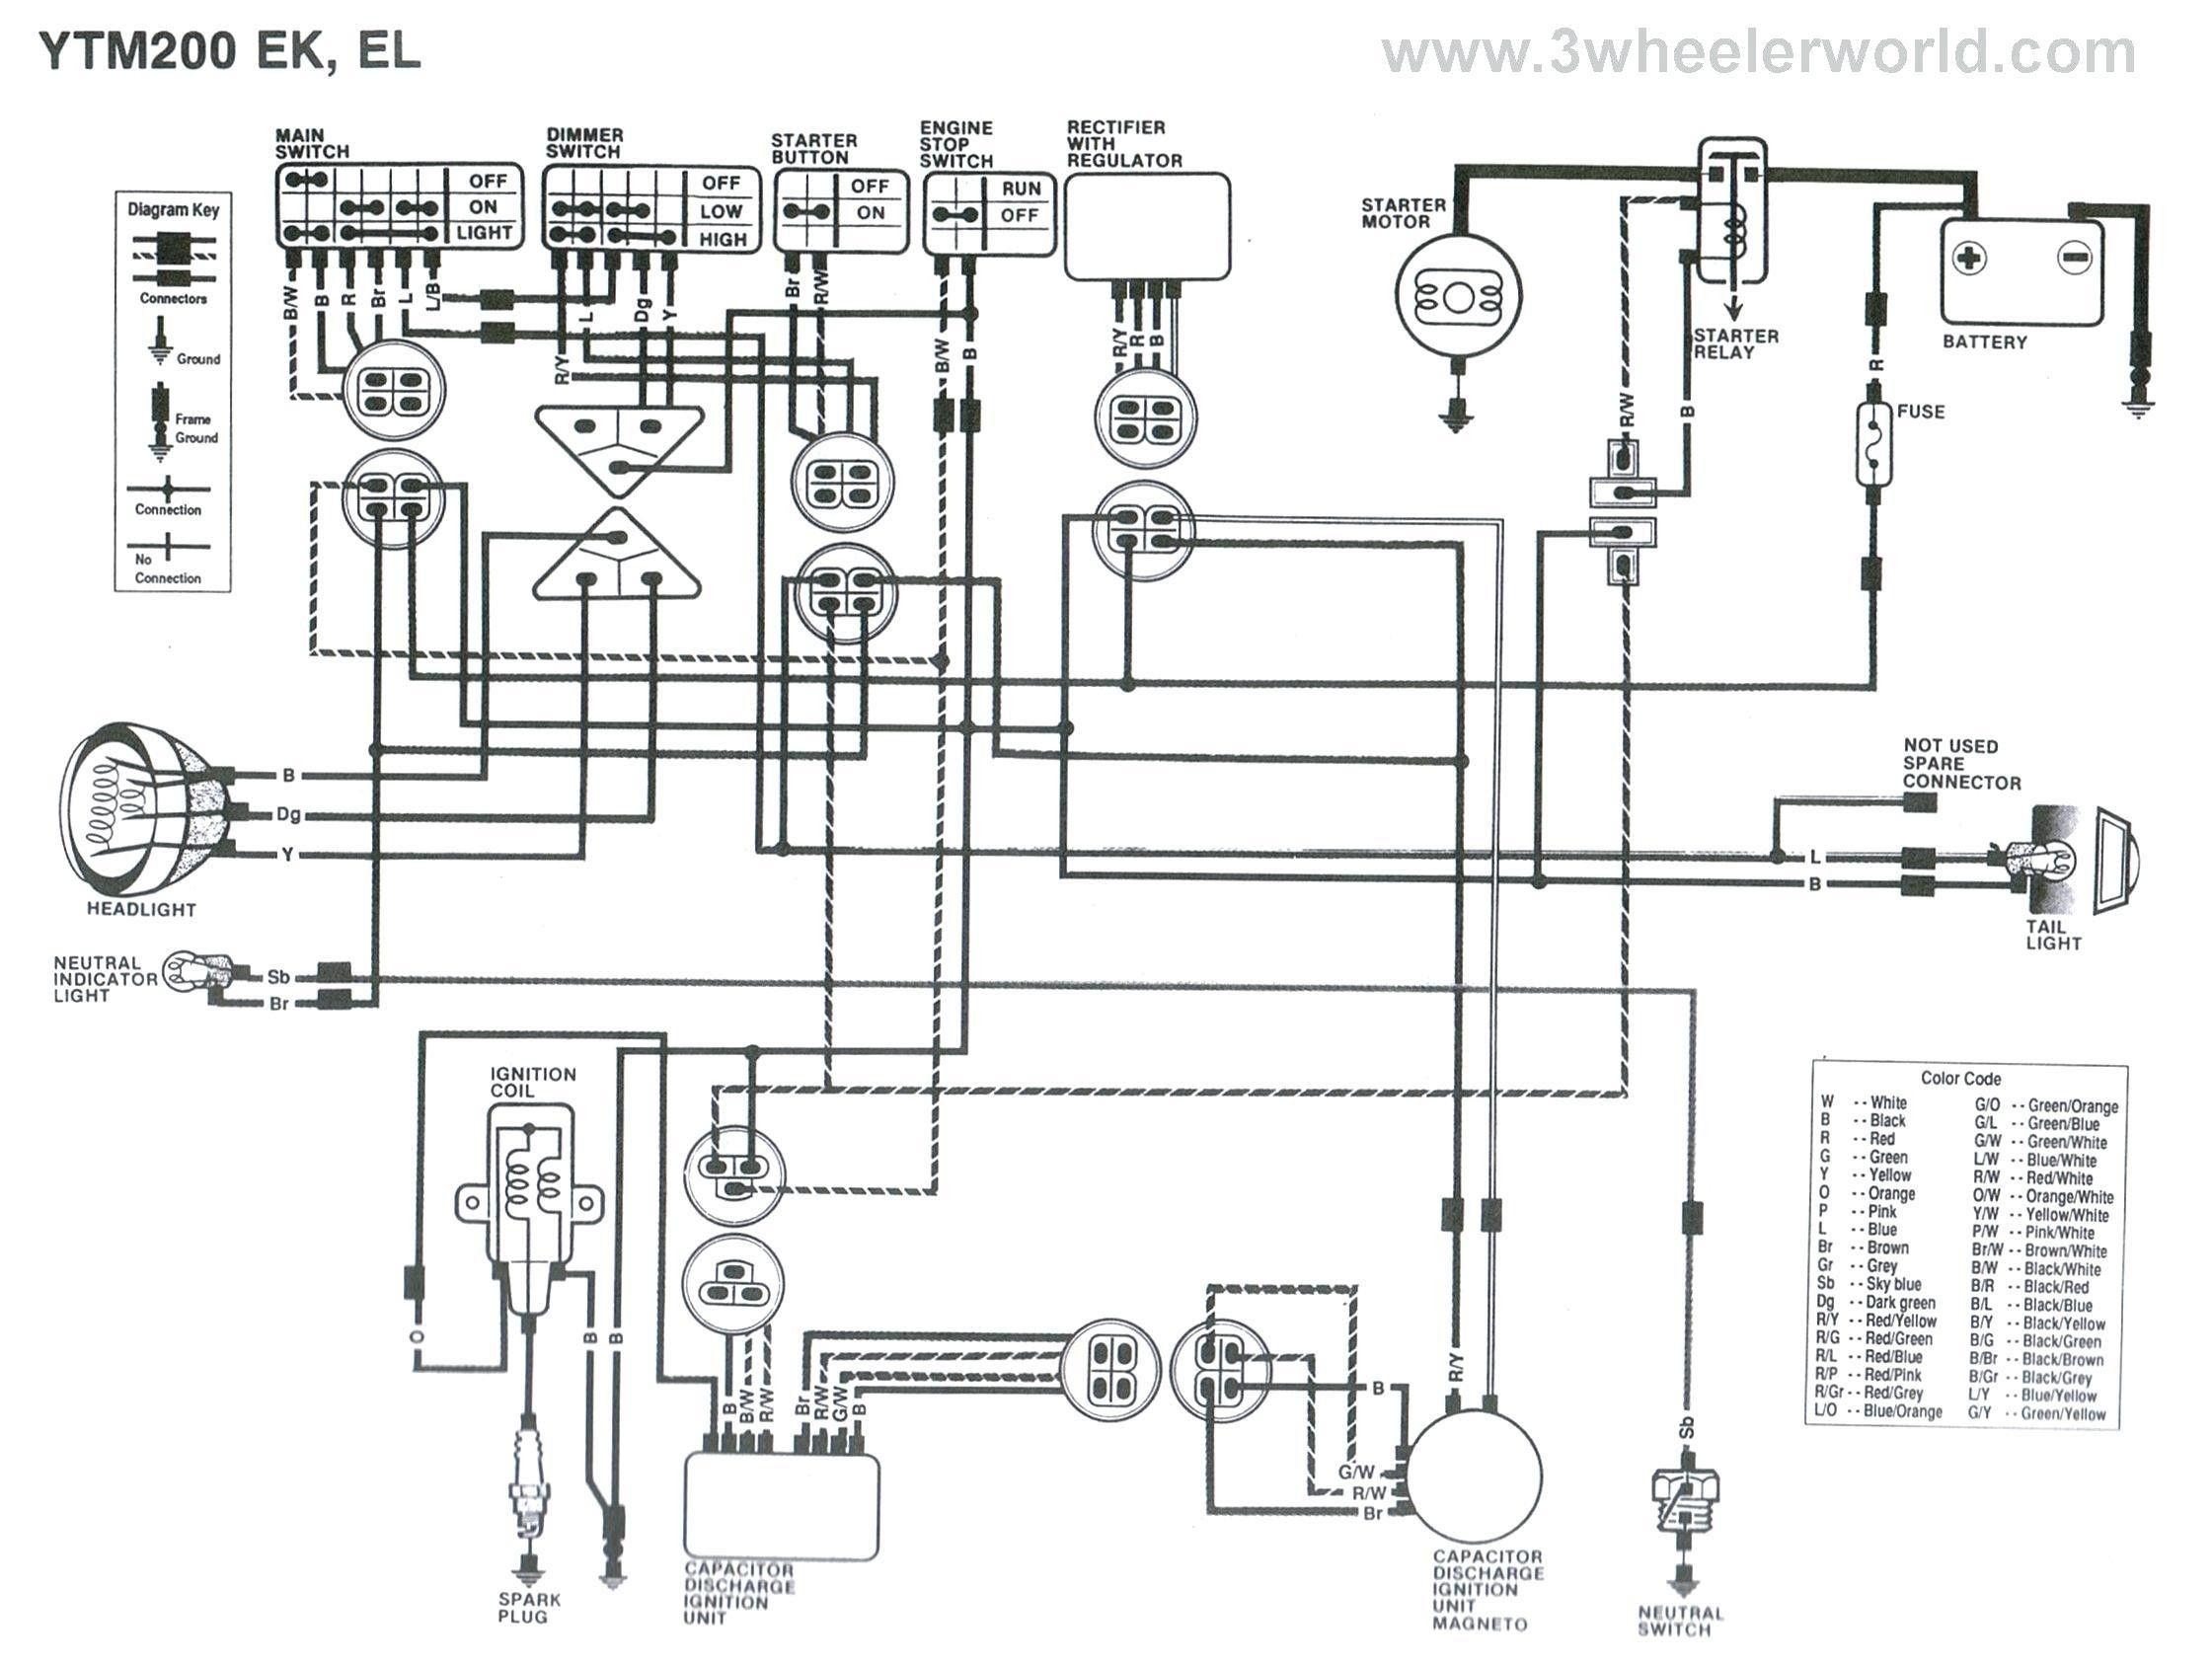 Diagramsample Diagramformats Diagramtemplate Diagram Wire Yamaha